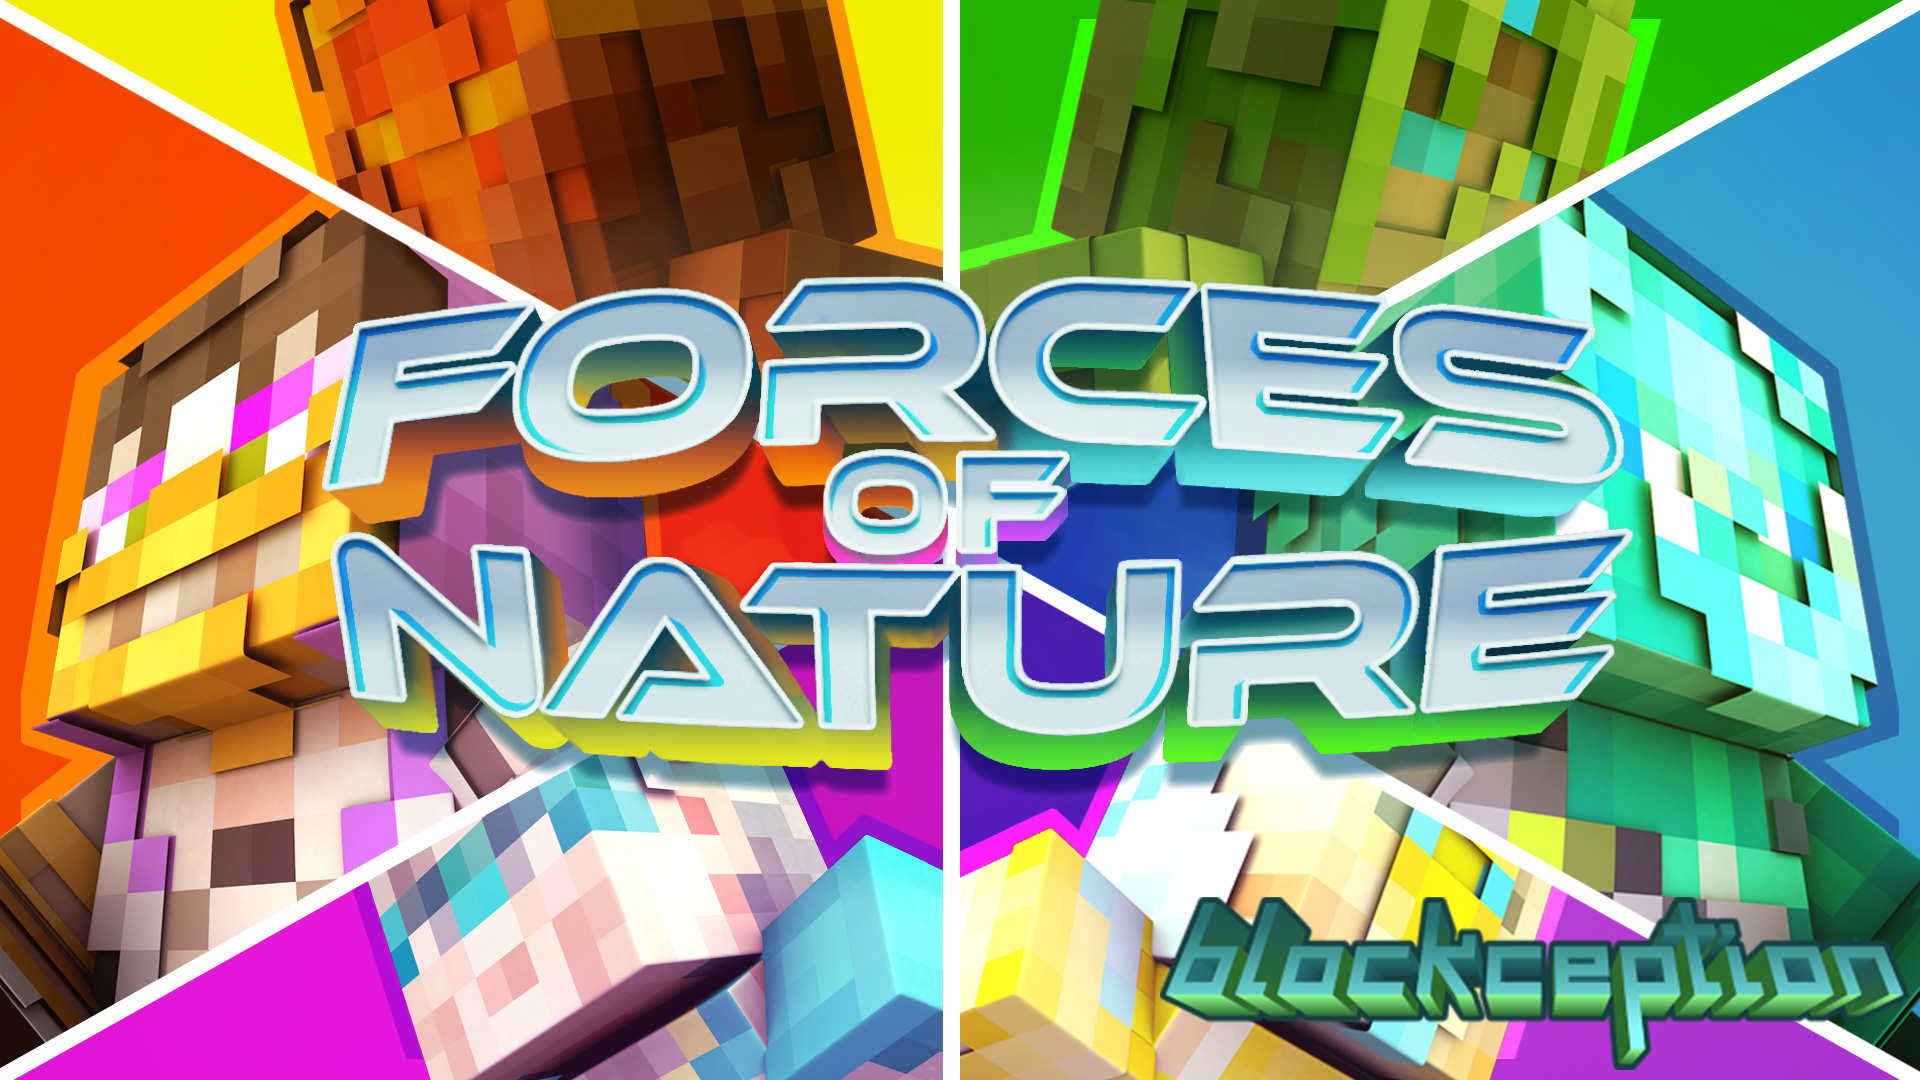 Forces_Of_Nature_1920x1080.jpg